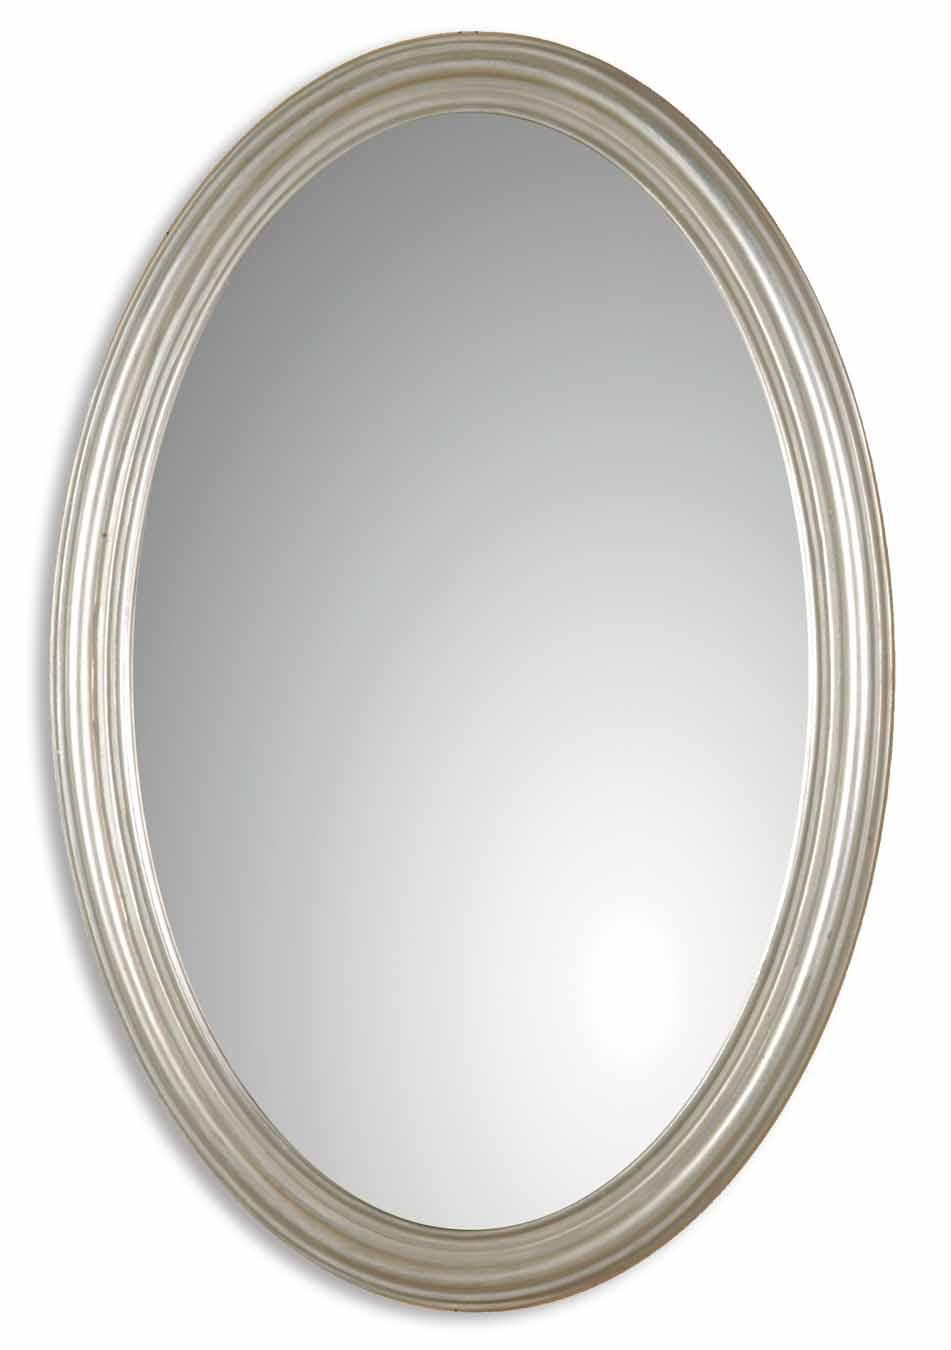 Uttermost Franklin Oval Silver Mirror 08601 P Intended For Oval Silver Mirror (Photo 1 of 20)